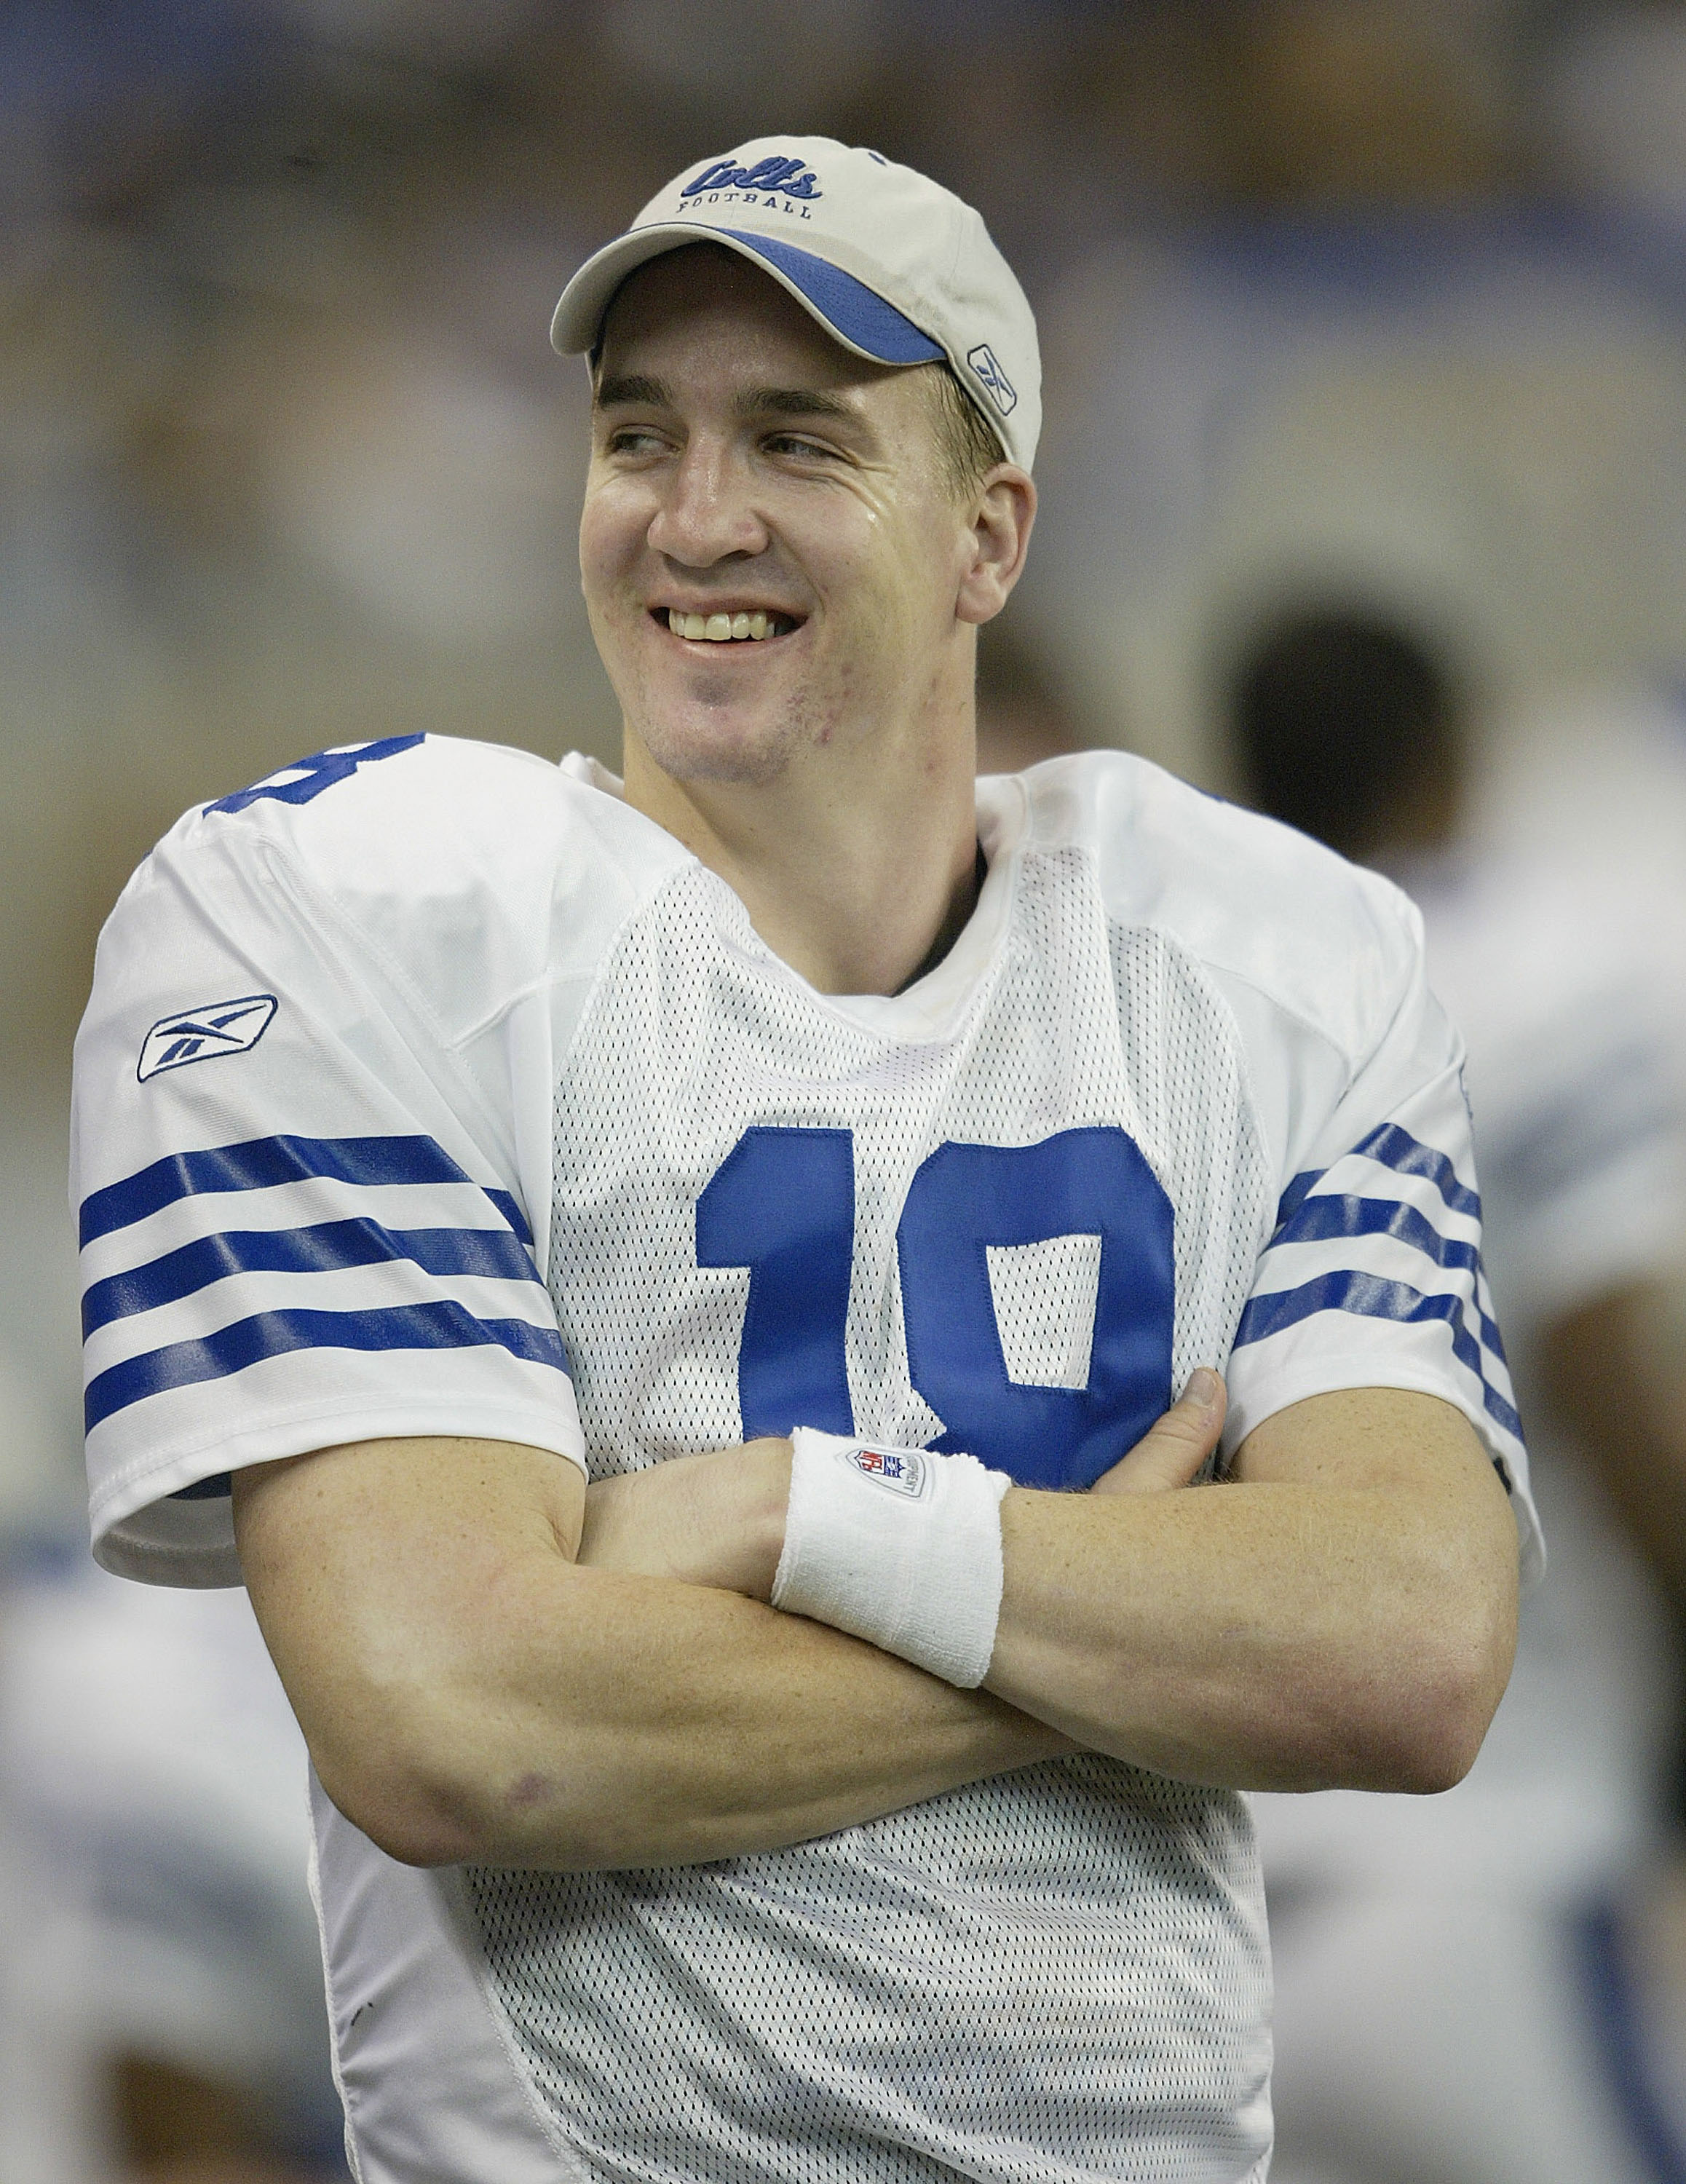 DETROIT, MI - NOVEMBER 25:  Peyton Manning #18 of the Indianapolis Colts smiles on the sidelines in the third quarter against the Detroit Lions at Ford Field on November 25, 2004 in Detroit, Michigan. (Photo by Tom Pidgeon/Getty Images)